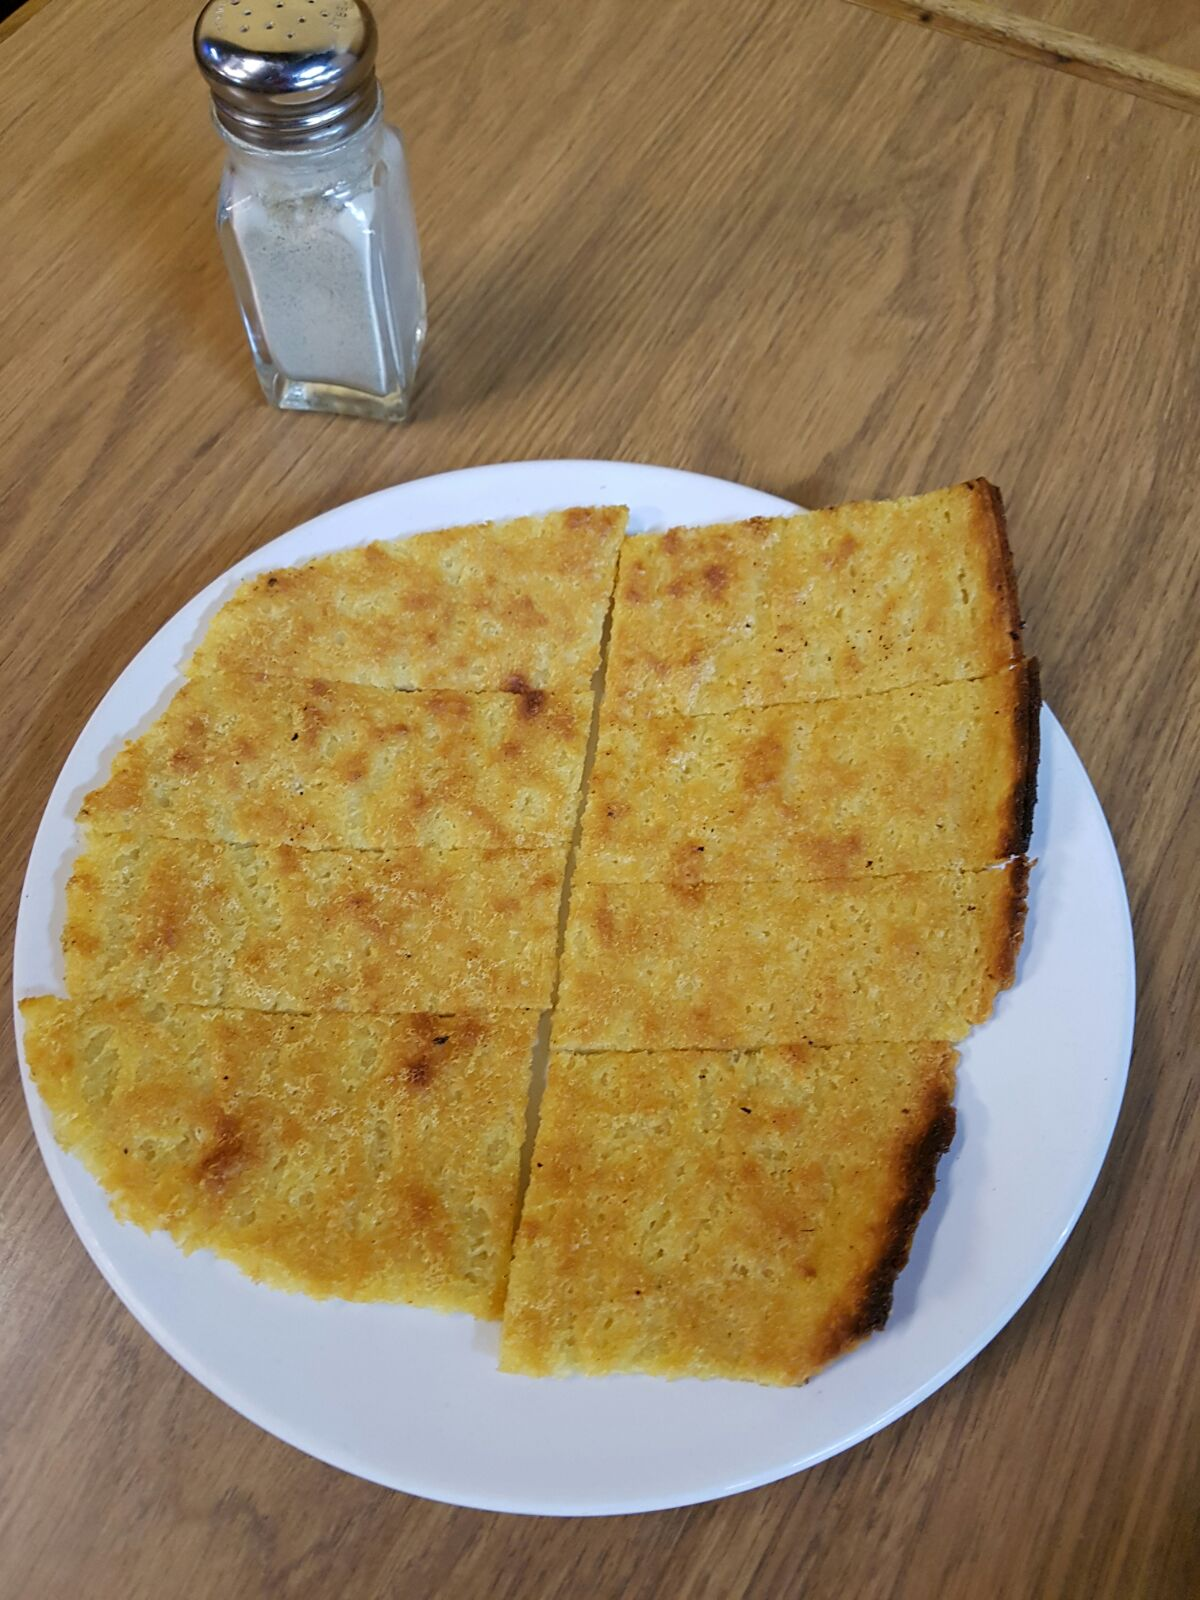 Faina (porcion)